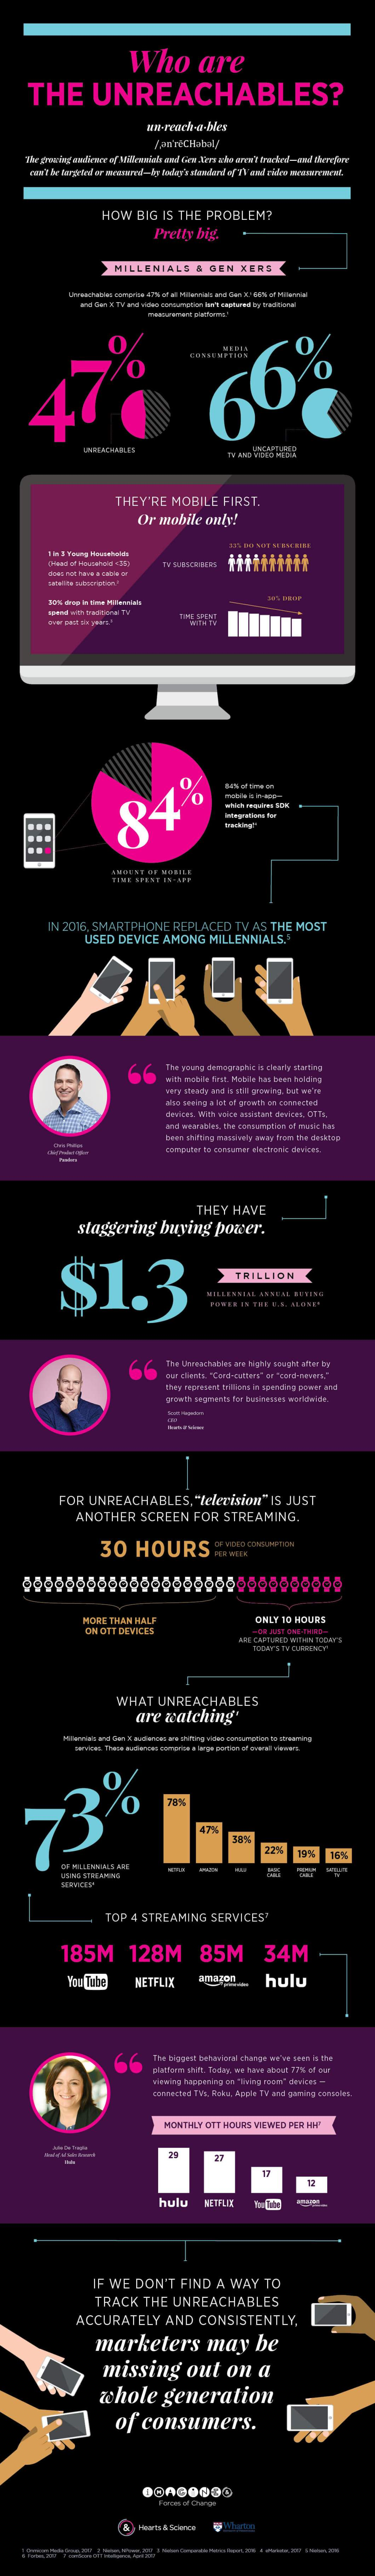 The Age of Cord-Cutters and the Unreachable Customer - Infographic